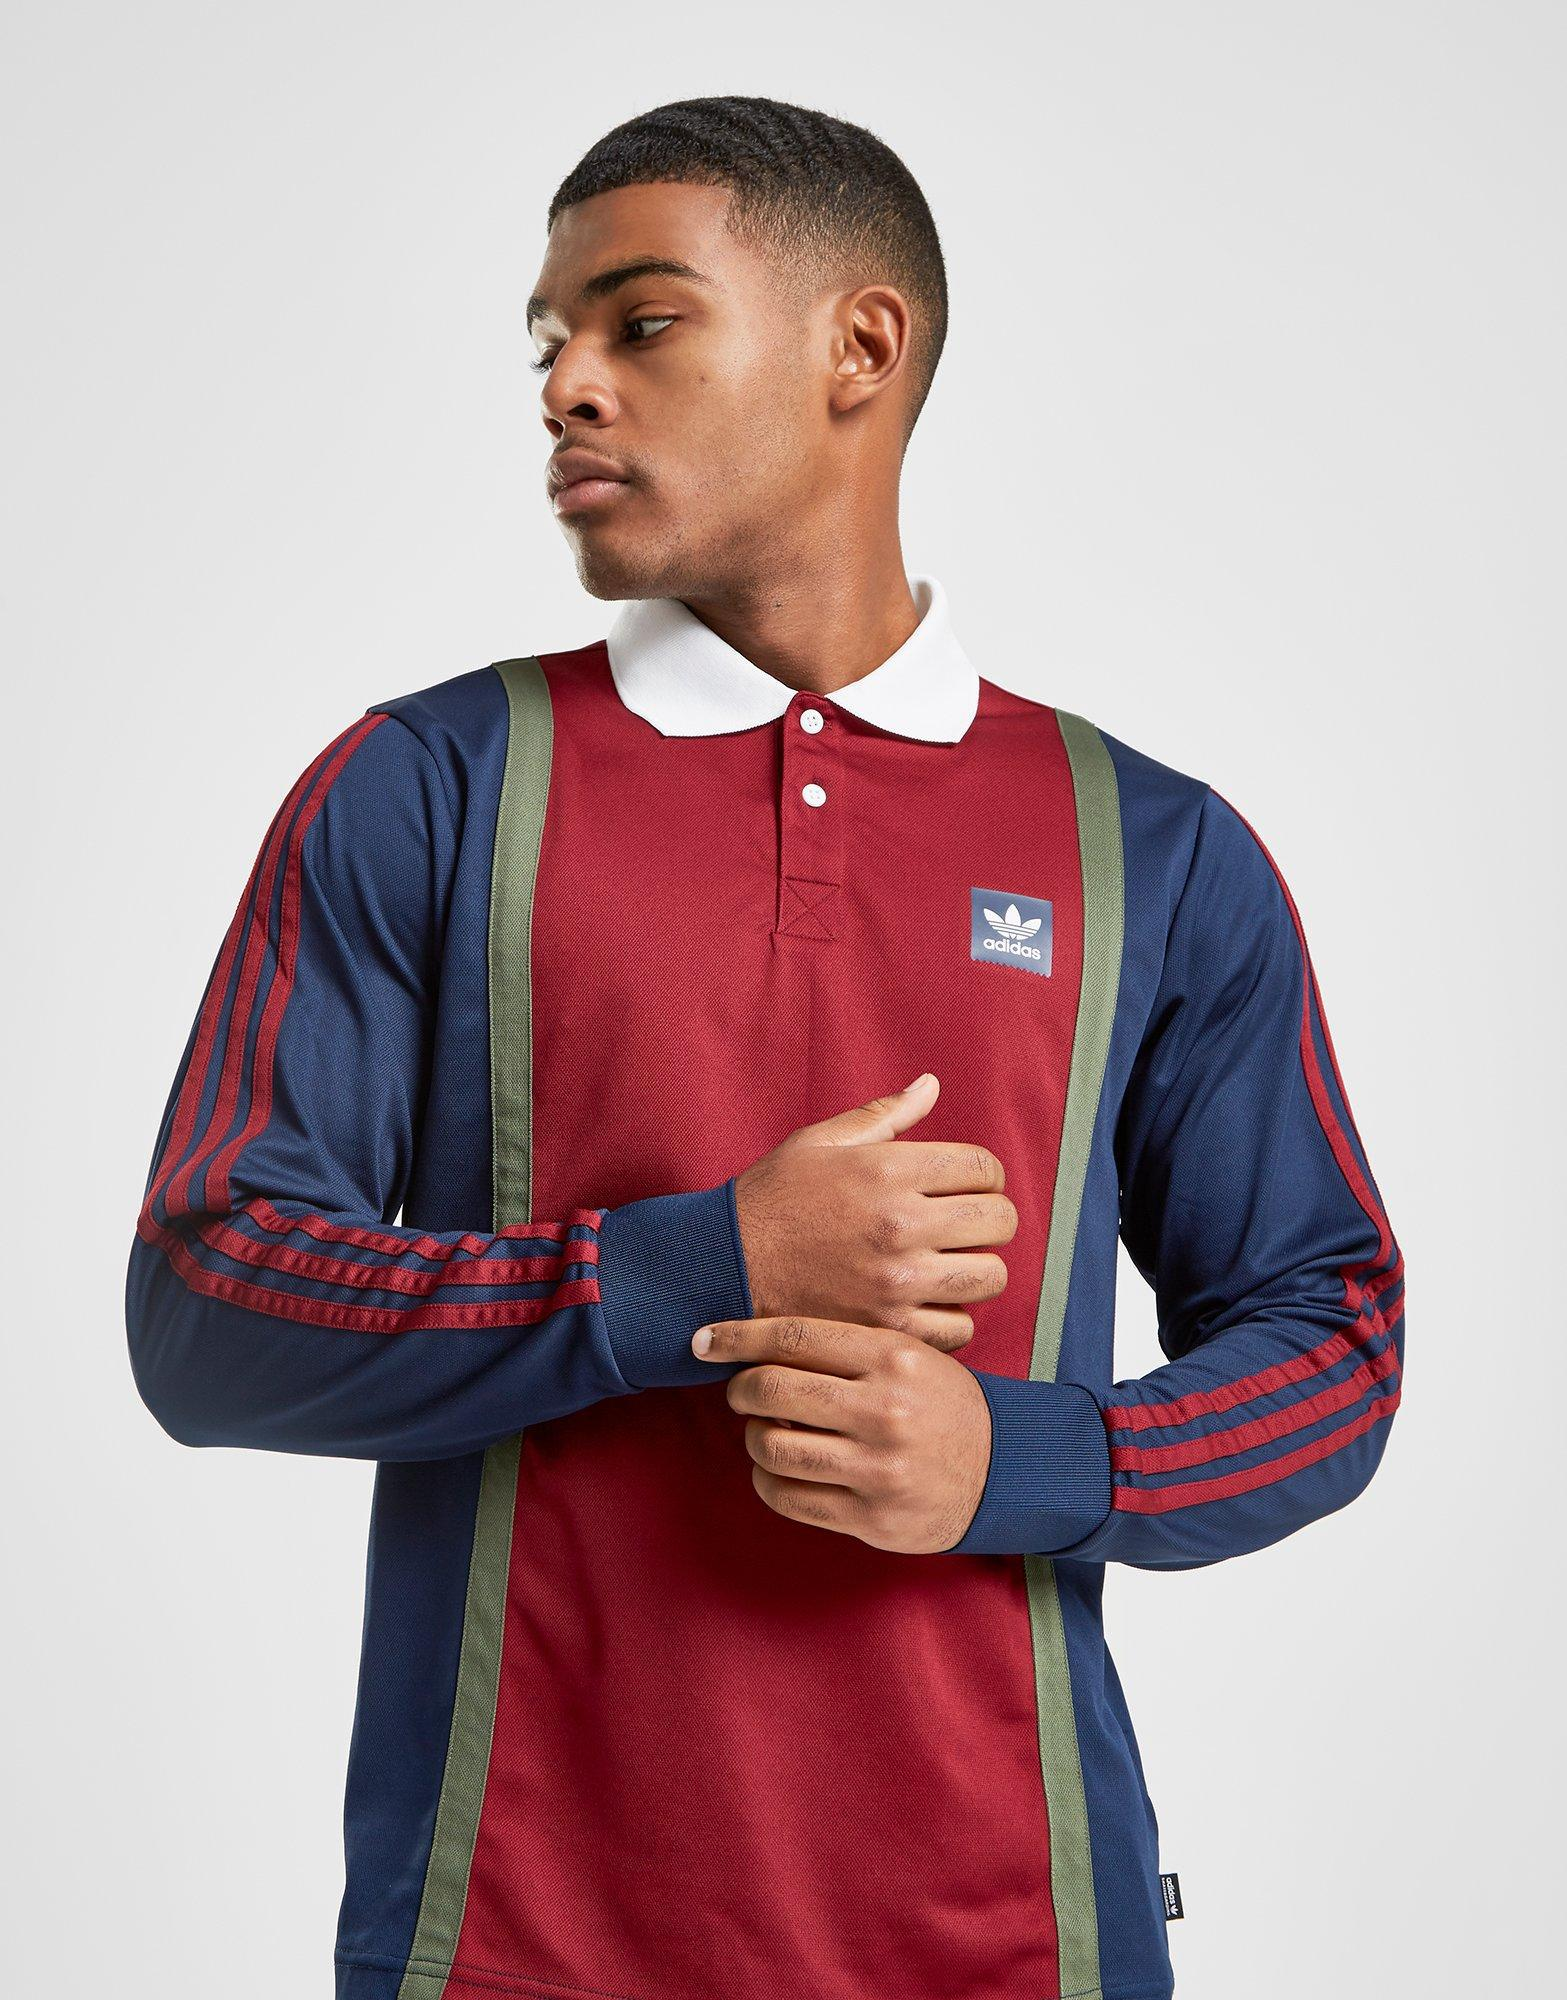 ae7aaa36cef adidas Originals Skateboarding Rugby Top in Blue for Men - Lyst